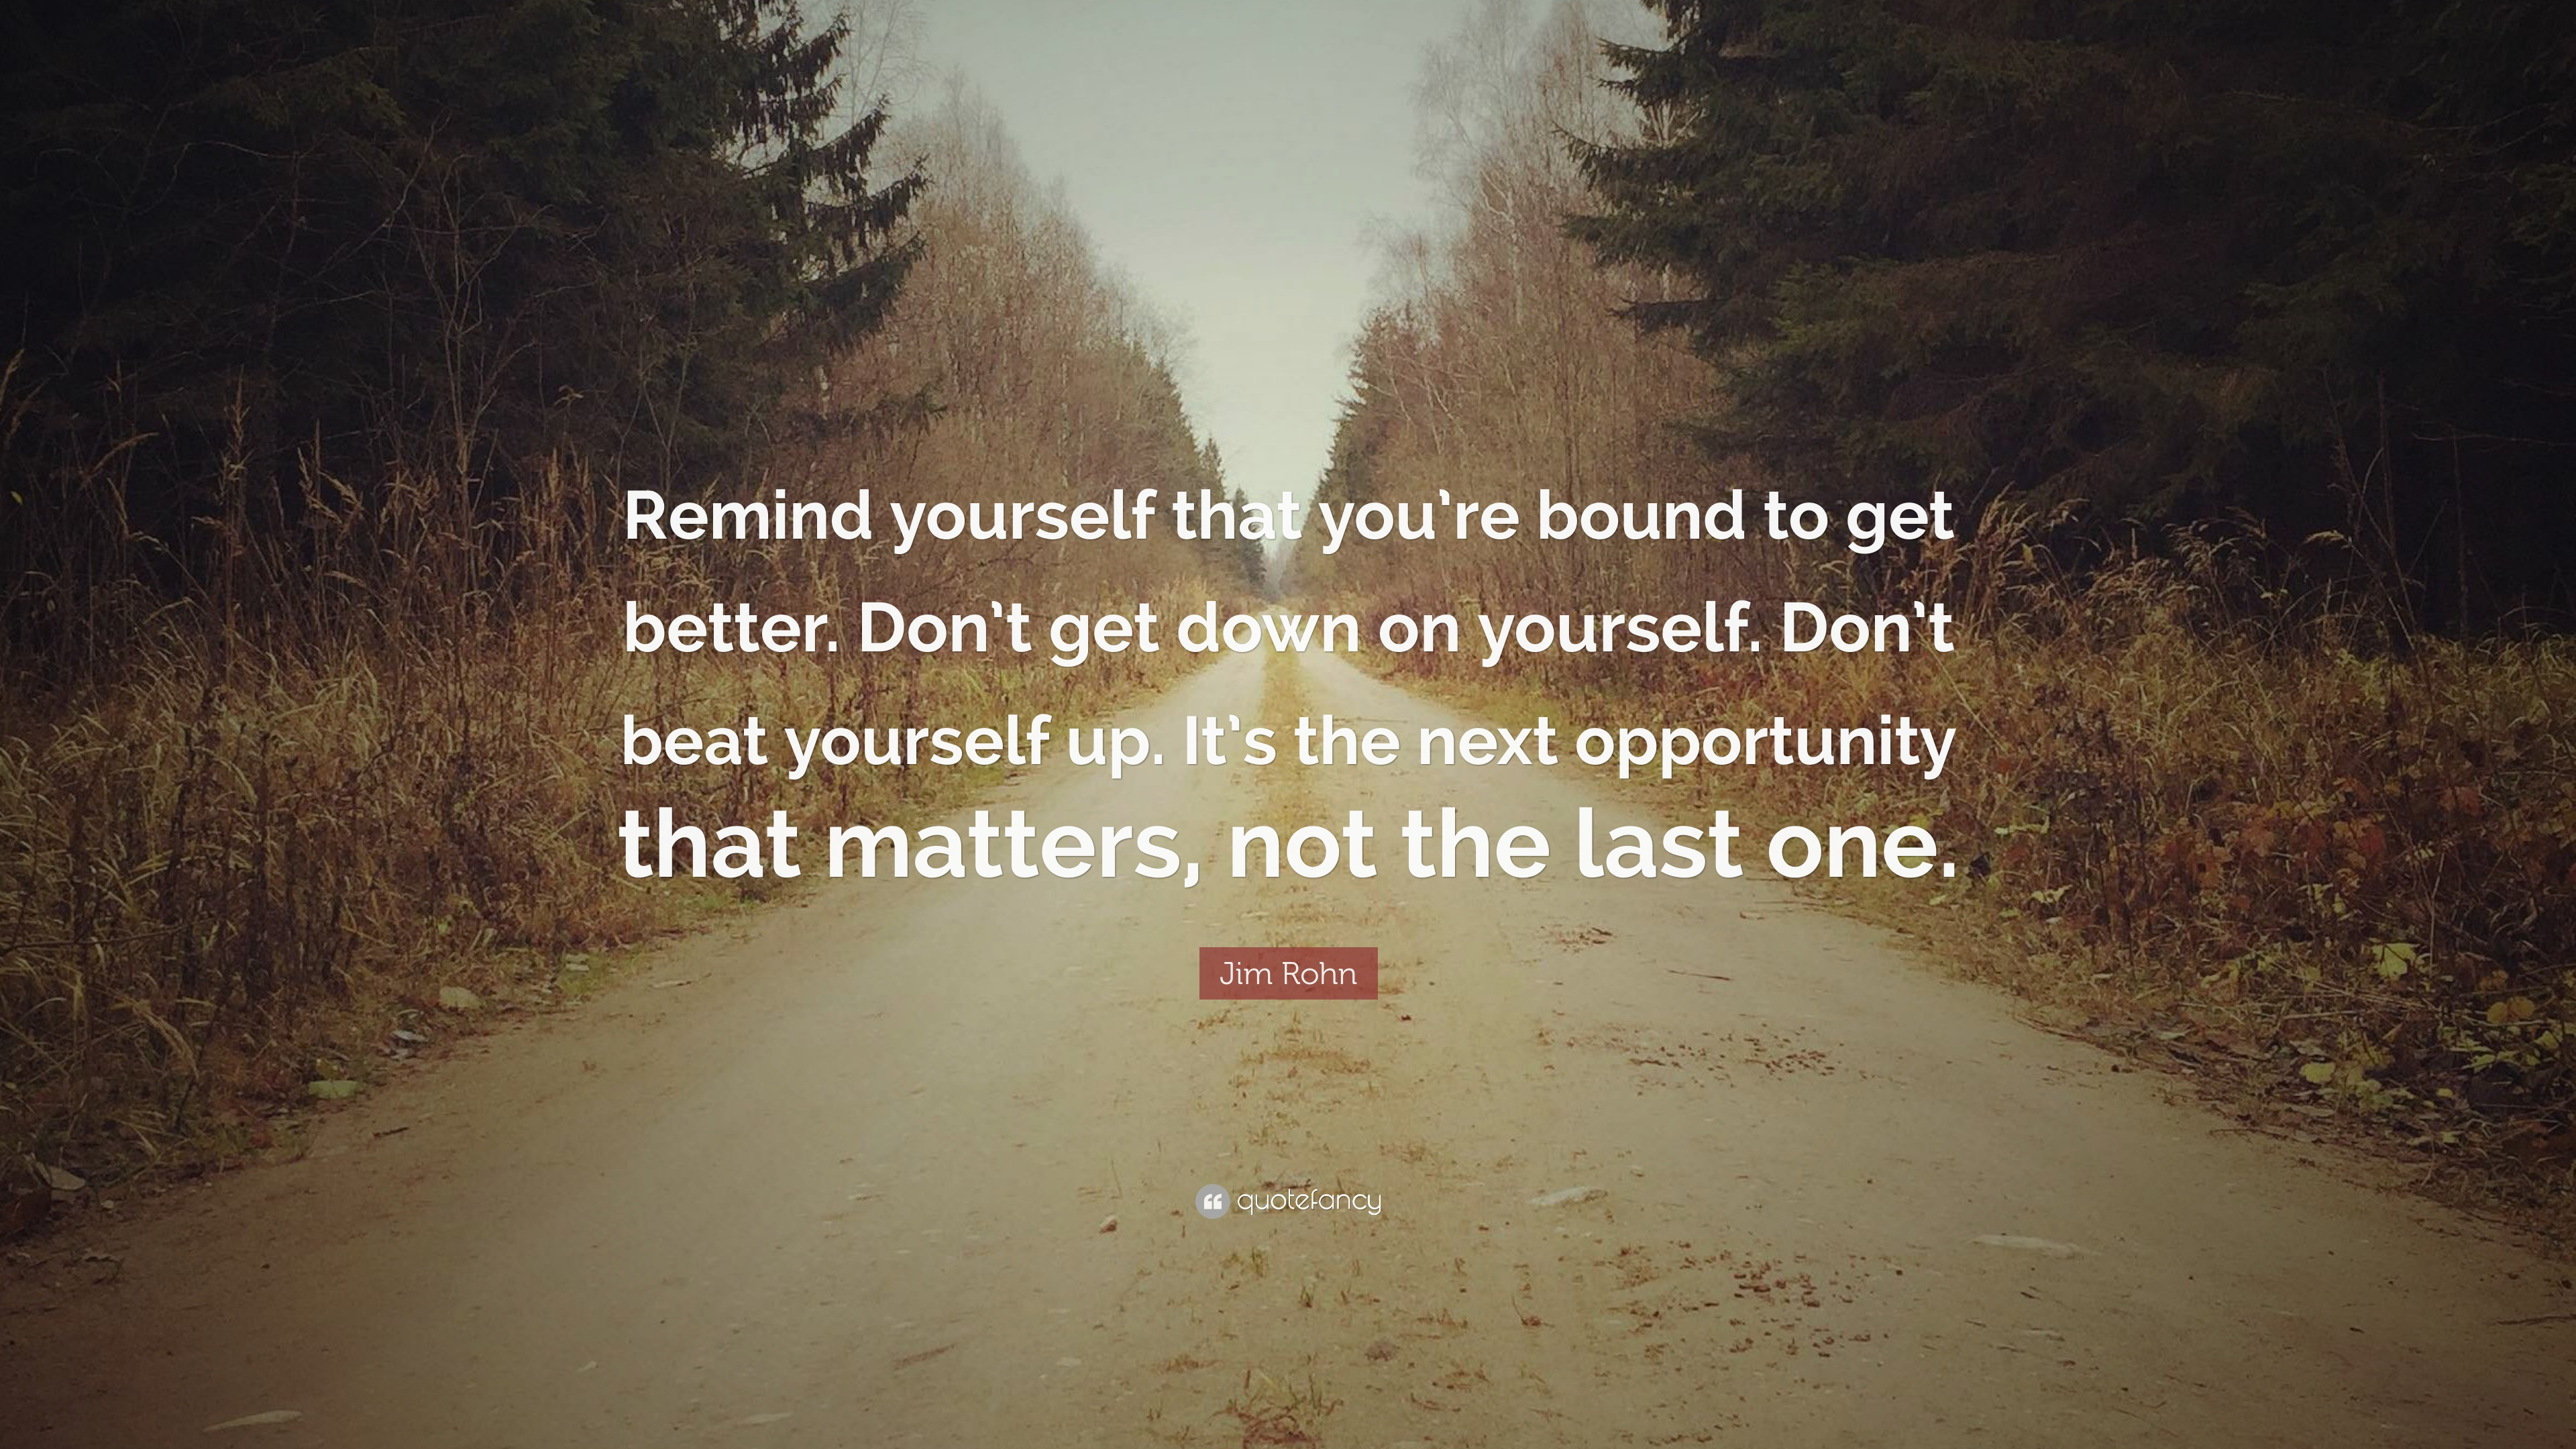 Jim Rohn Quote Remind Yourself That Youre Bound To Get Better